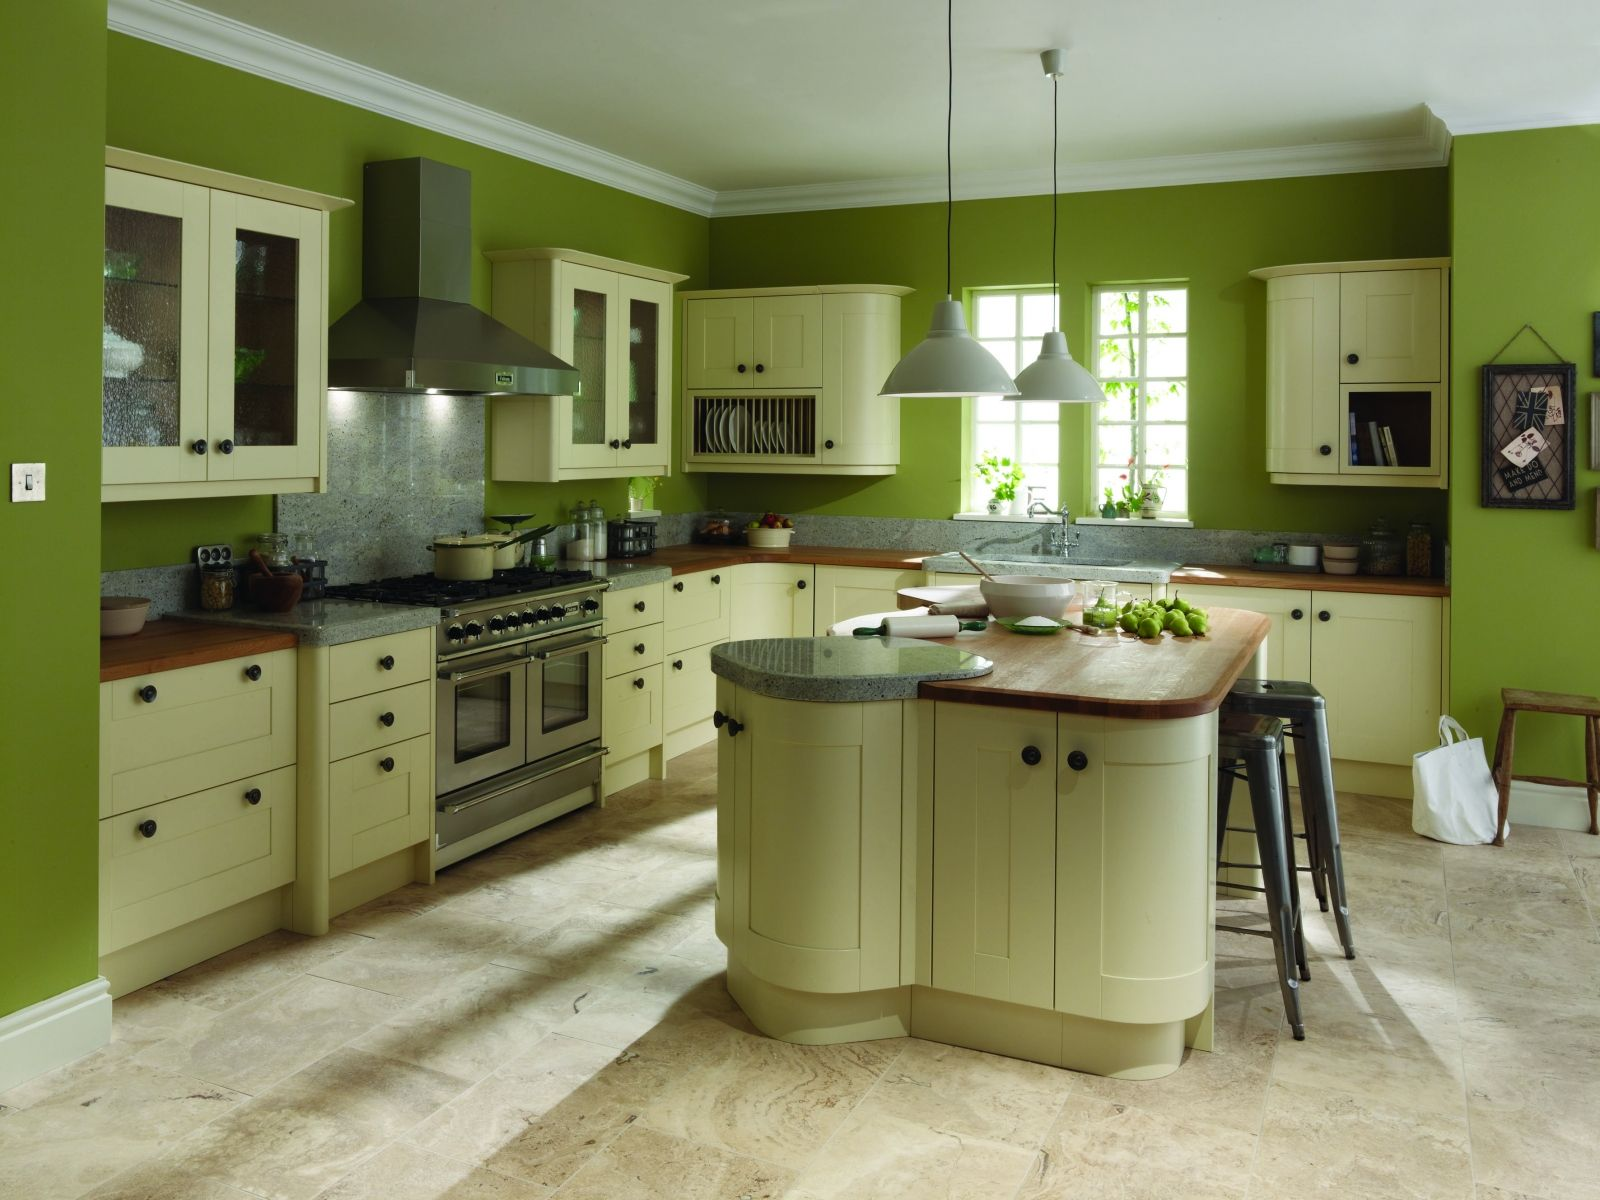 Modern Kitchen Colour Schemes Lime Green Kitchen Wallpaper Google Search Kitchen Remodel